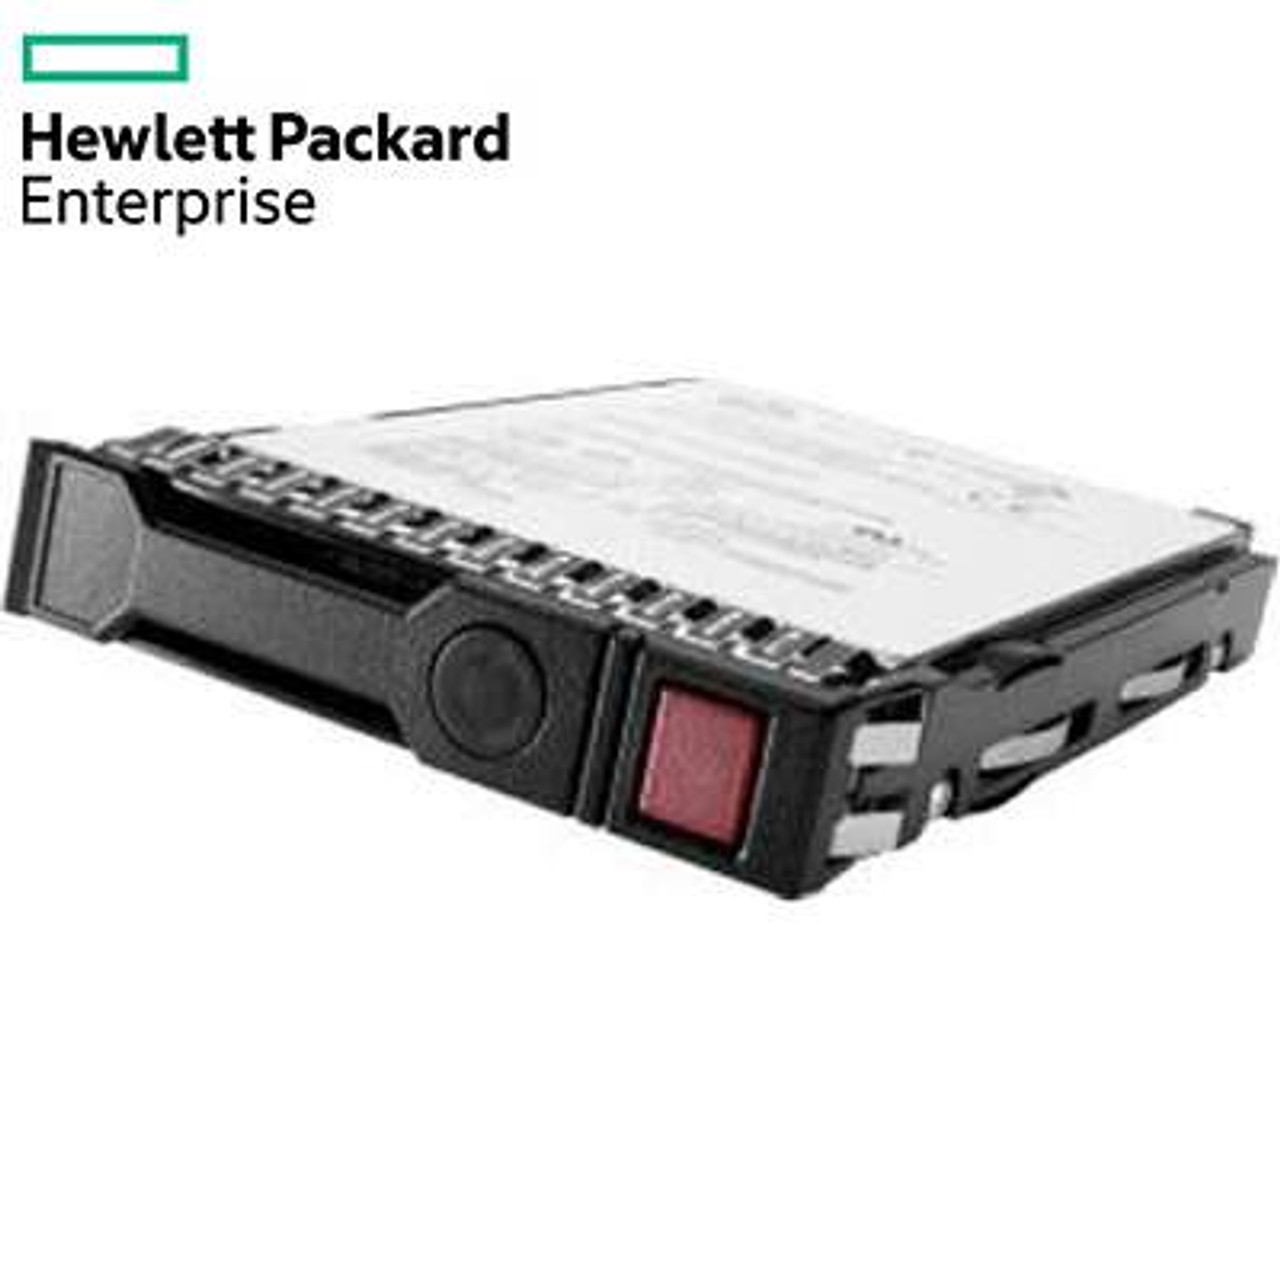 Image for HPE 872475-B21 300GB SAS 10K SFF SC DS Hard Drive CX Computer Superstore